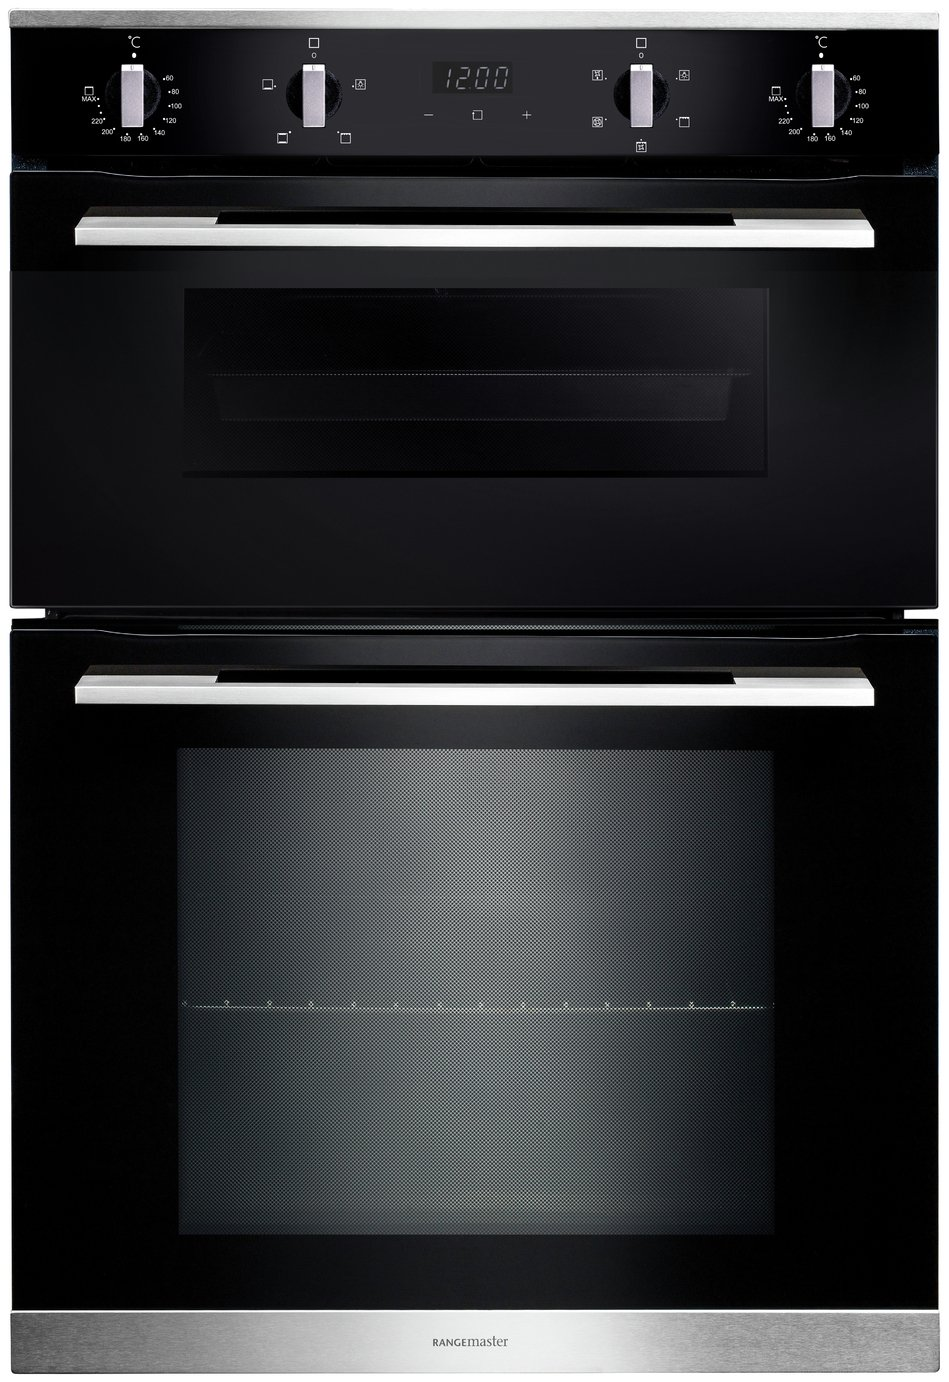 Click here for Rangemaster RMB9045BL/SS (11219) 90cm Built-In 4/5 Functions Double oven prices